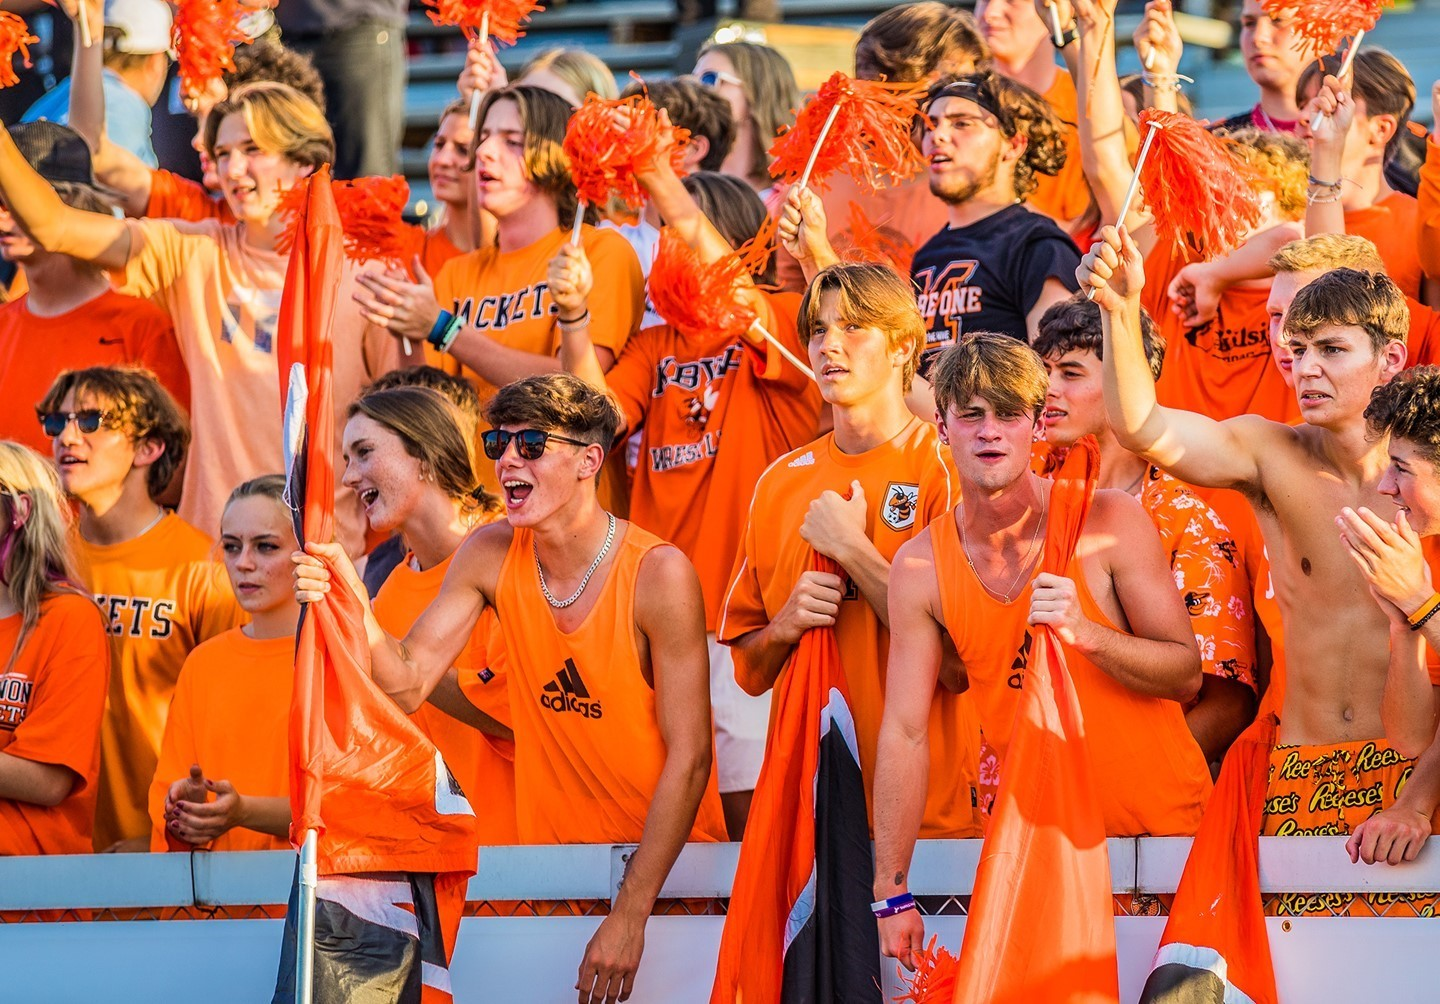 The HIVE cheering during their Orange Out.